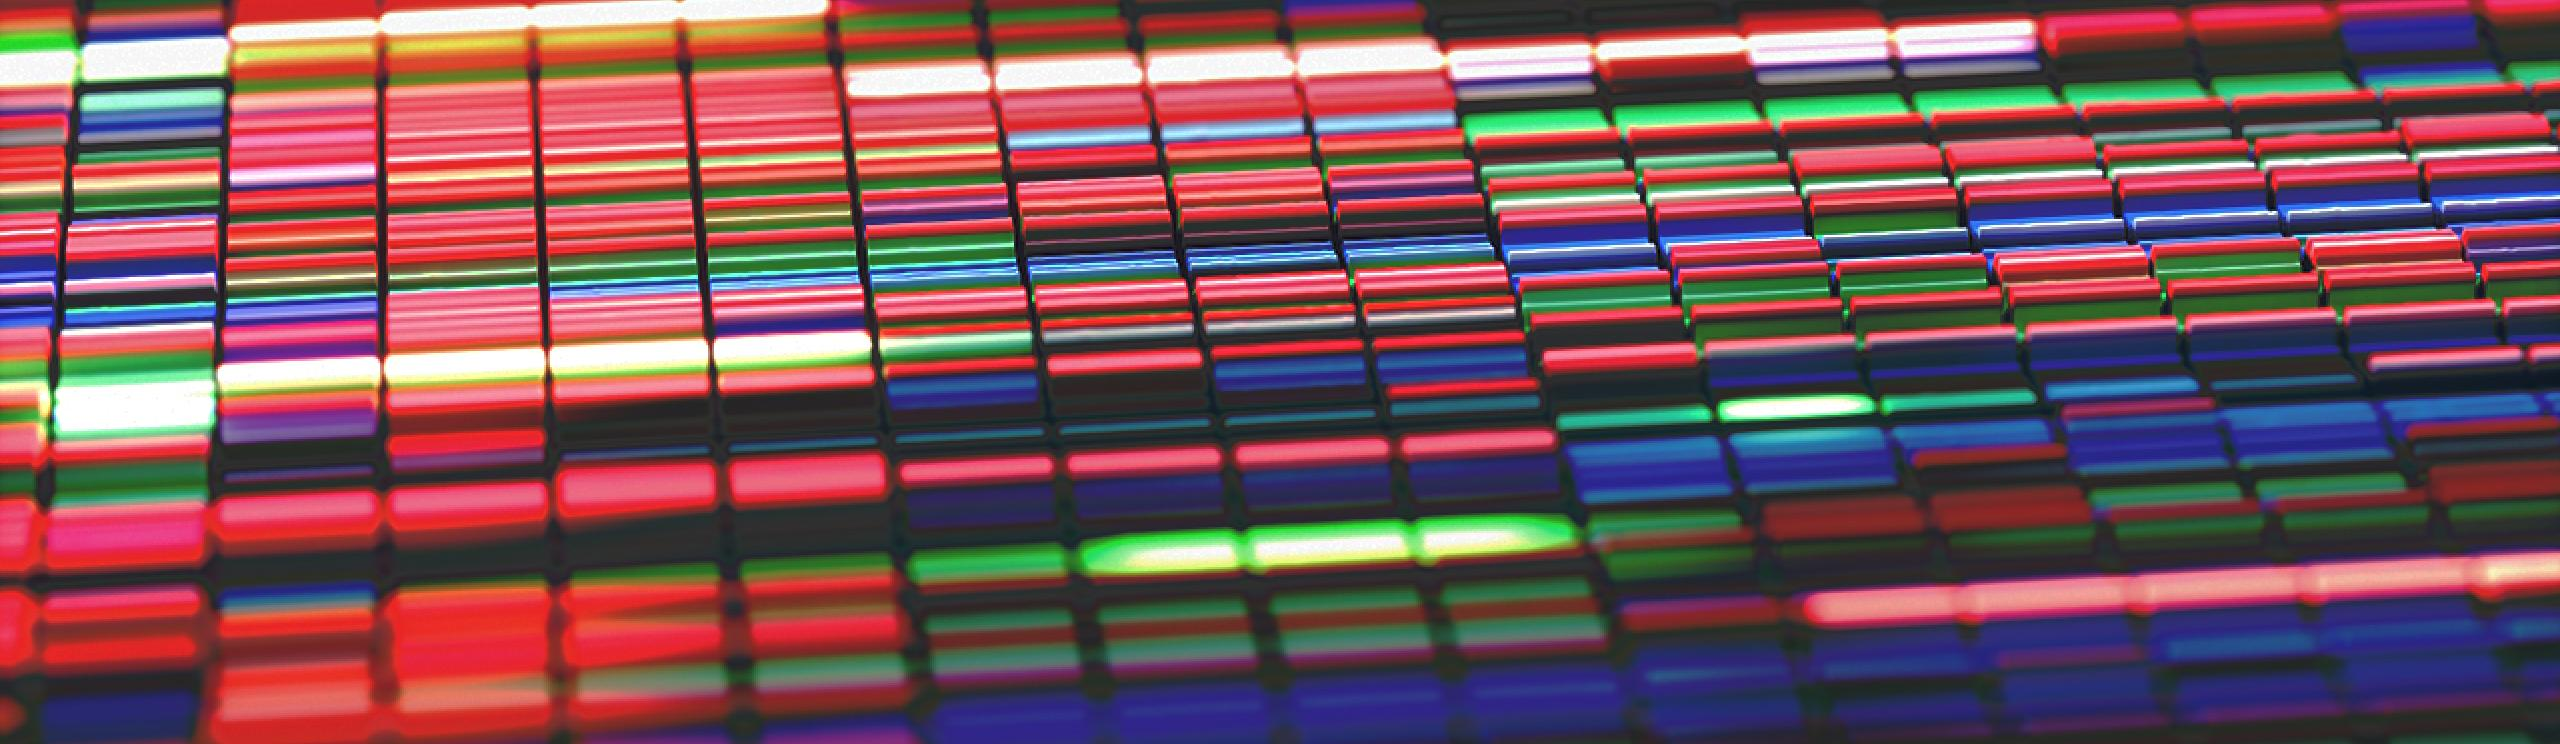 colorful sanger sequencing (Credit: Thinkstock / ktsimage)